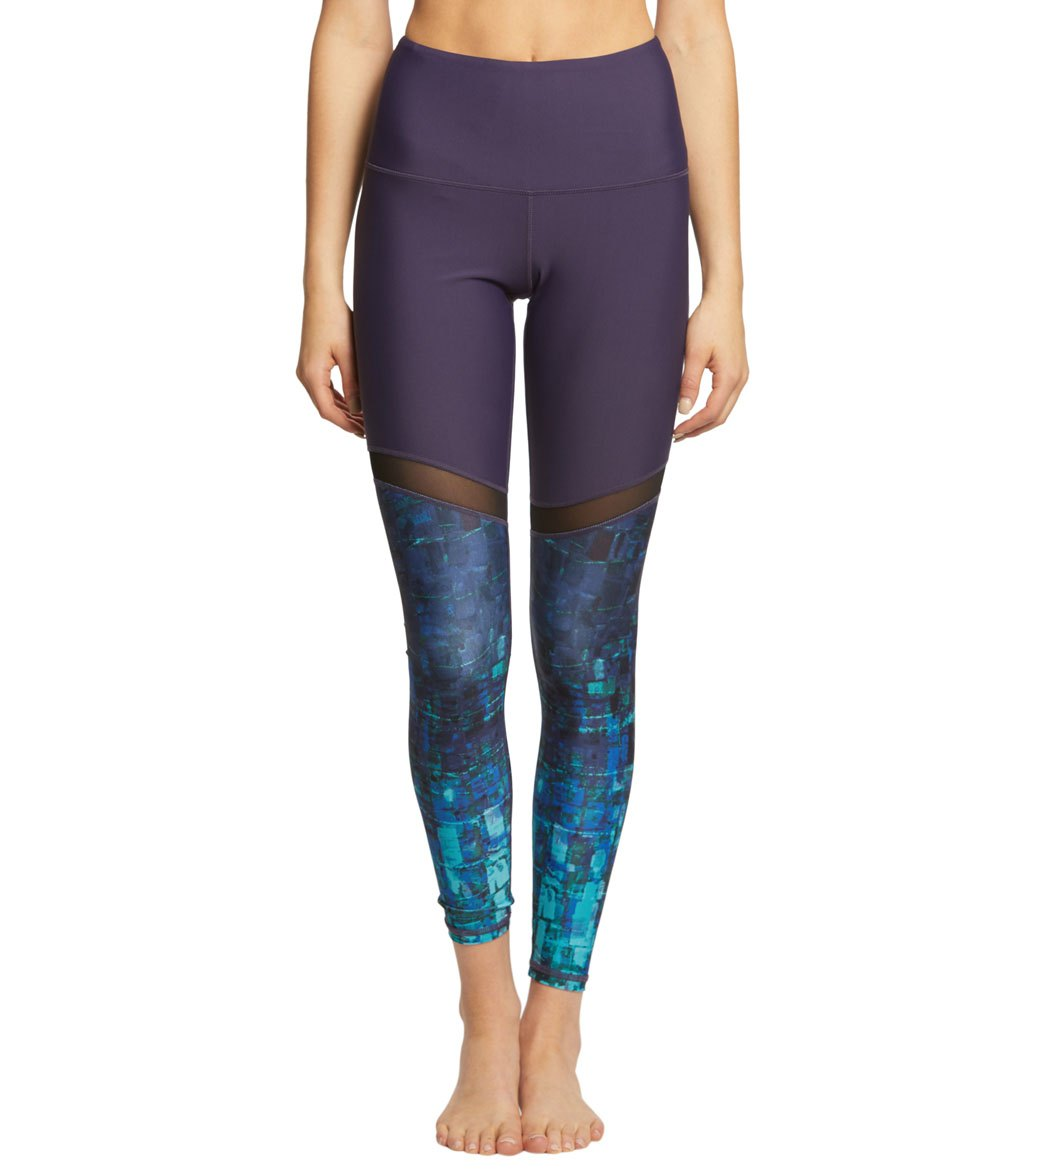 7c6b401633487 Manduka Engineered High Line Yoga Leggings at YogaOutlet.com - Free ...